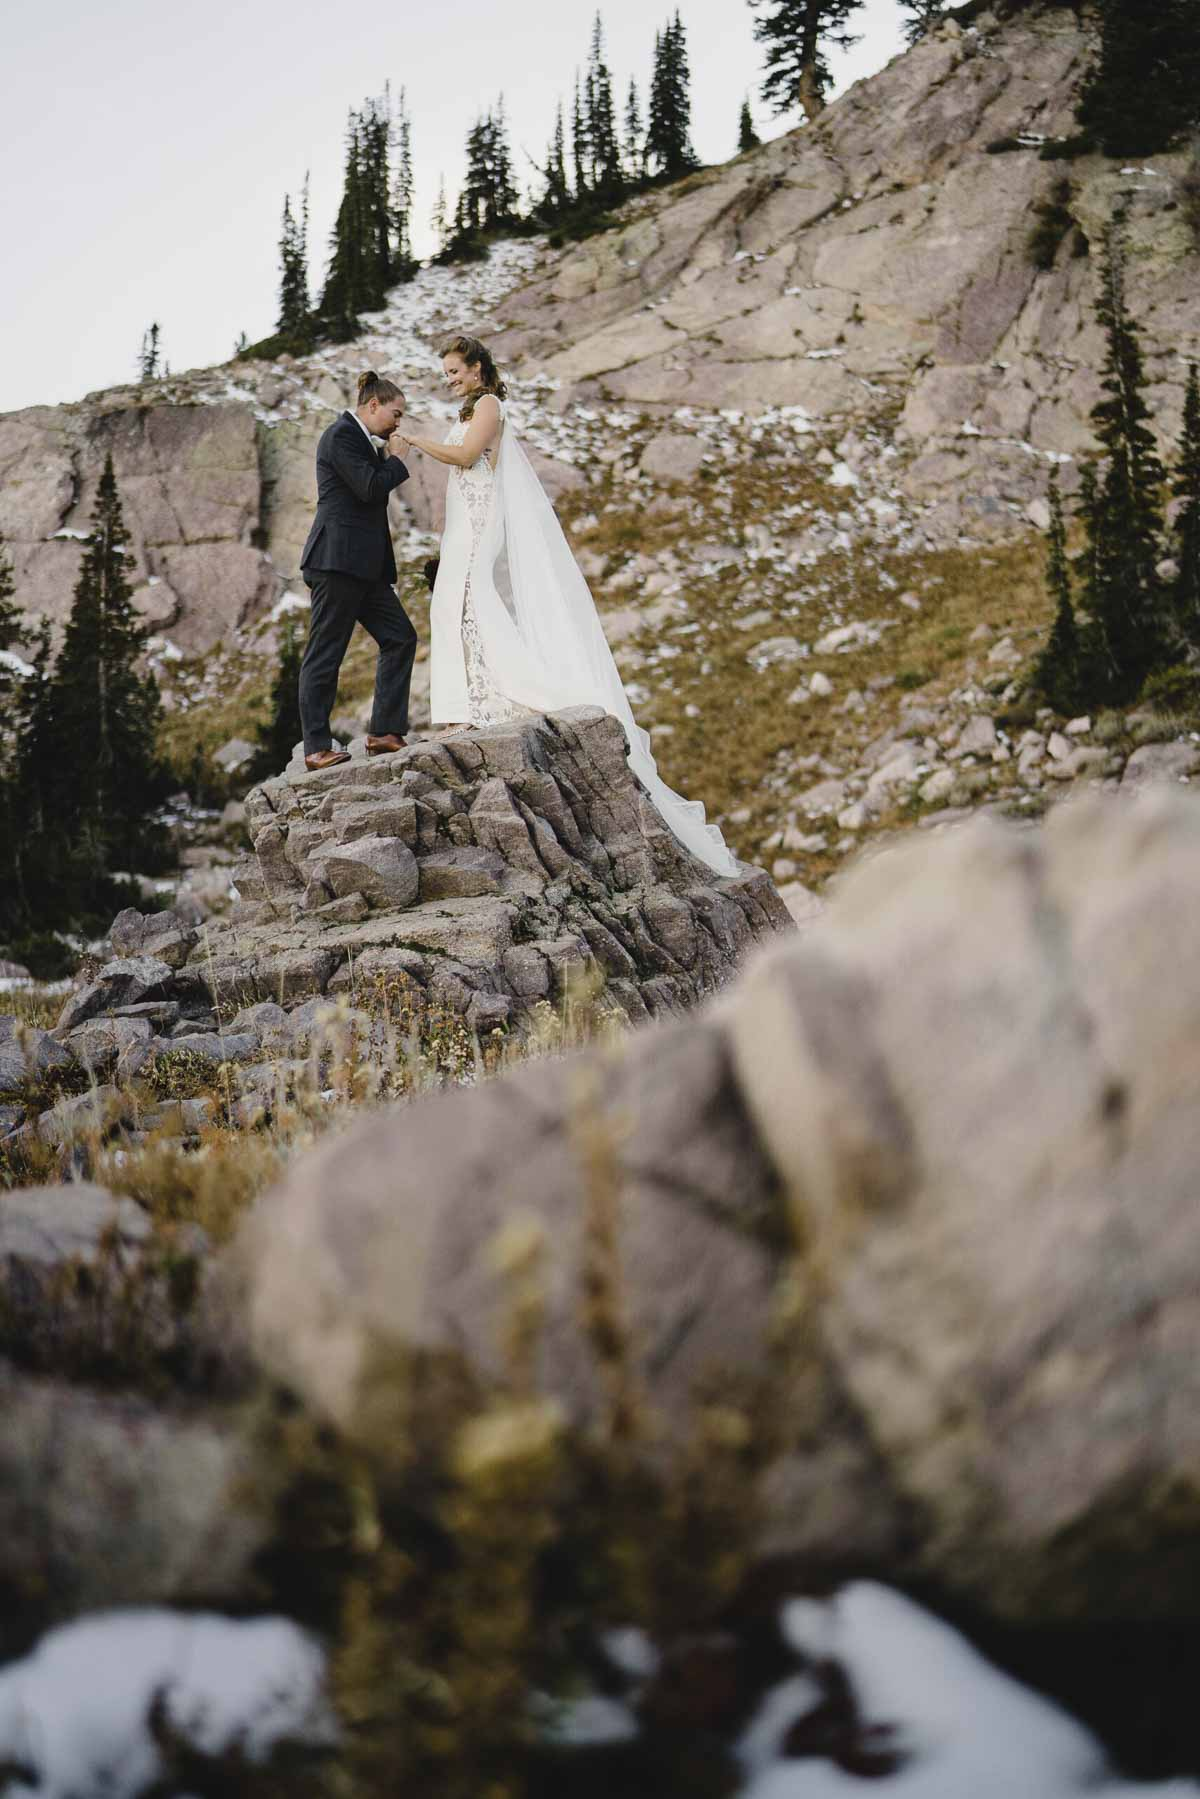 Snowbasin wedding groom kissing bride's hand photo